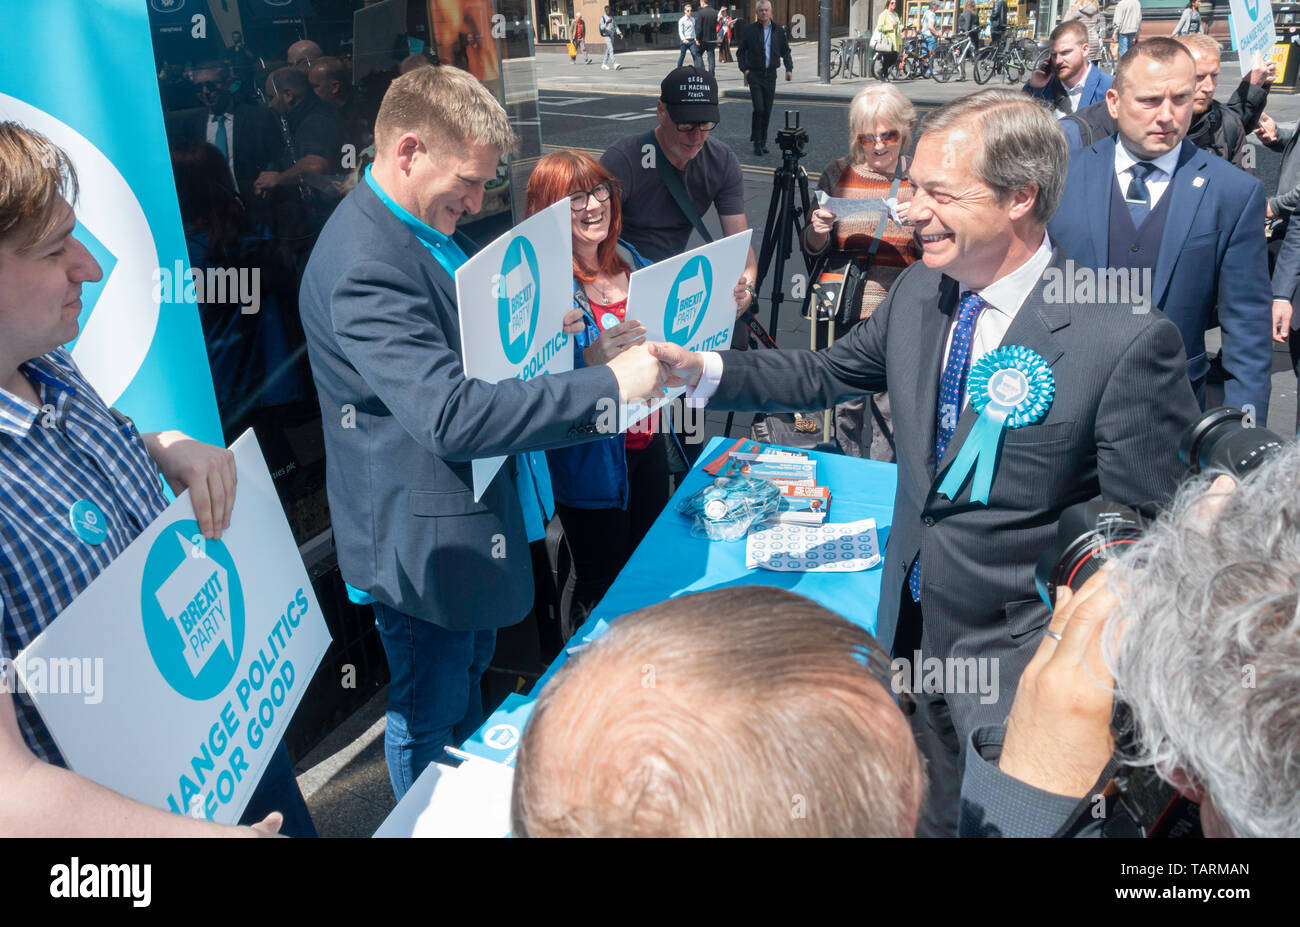 Newcastle upon Tyne, UK. 20th May 2019. UK. Nigel Farage meeting fellow Brexit Party members Stock Photo